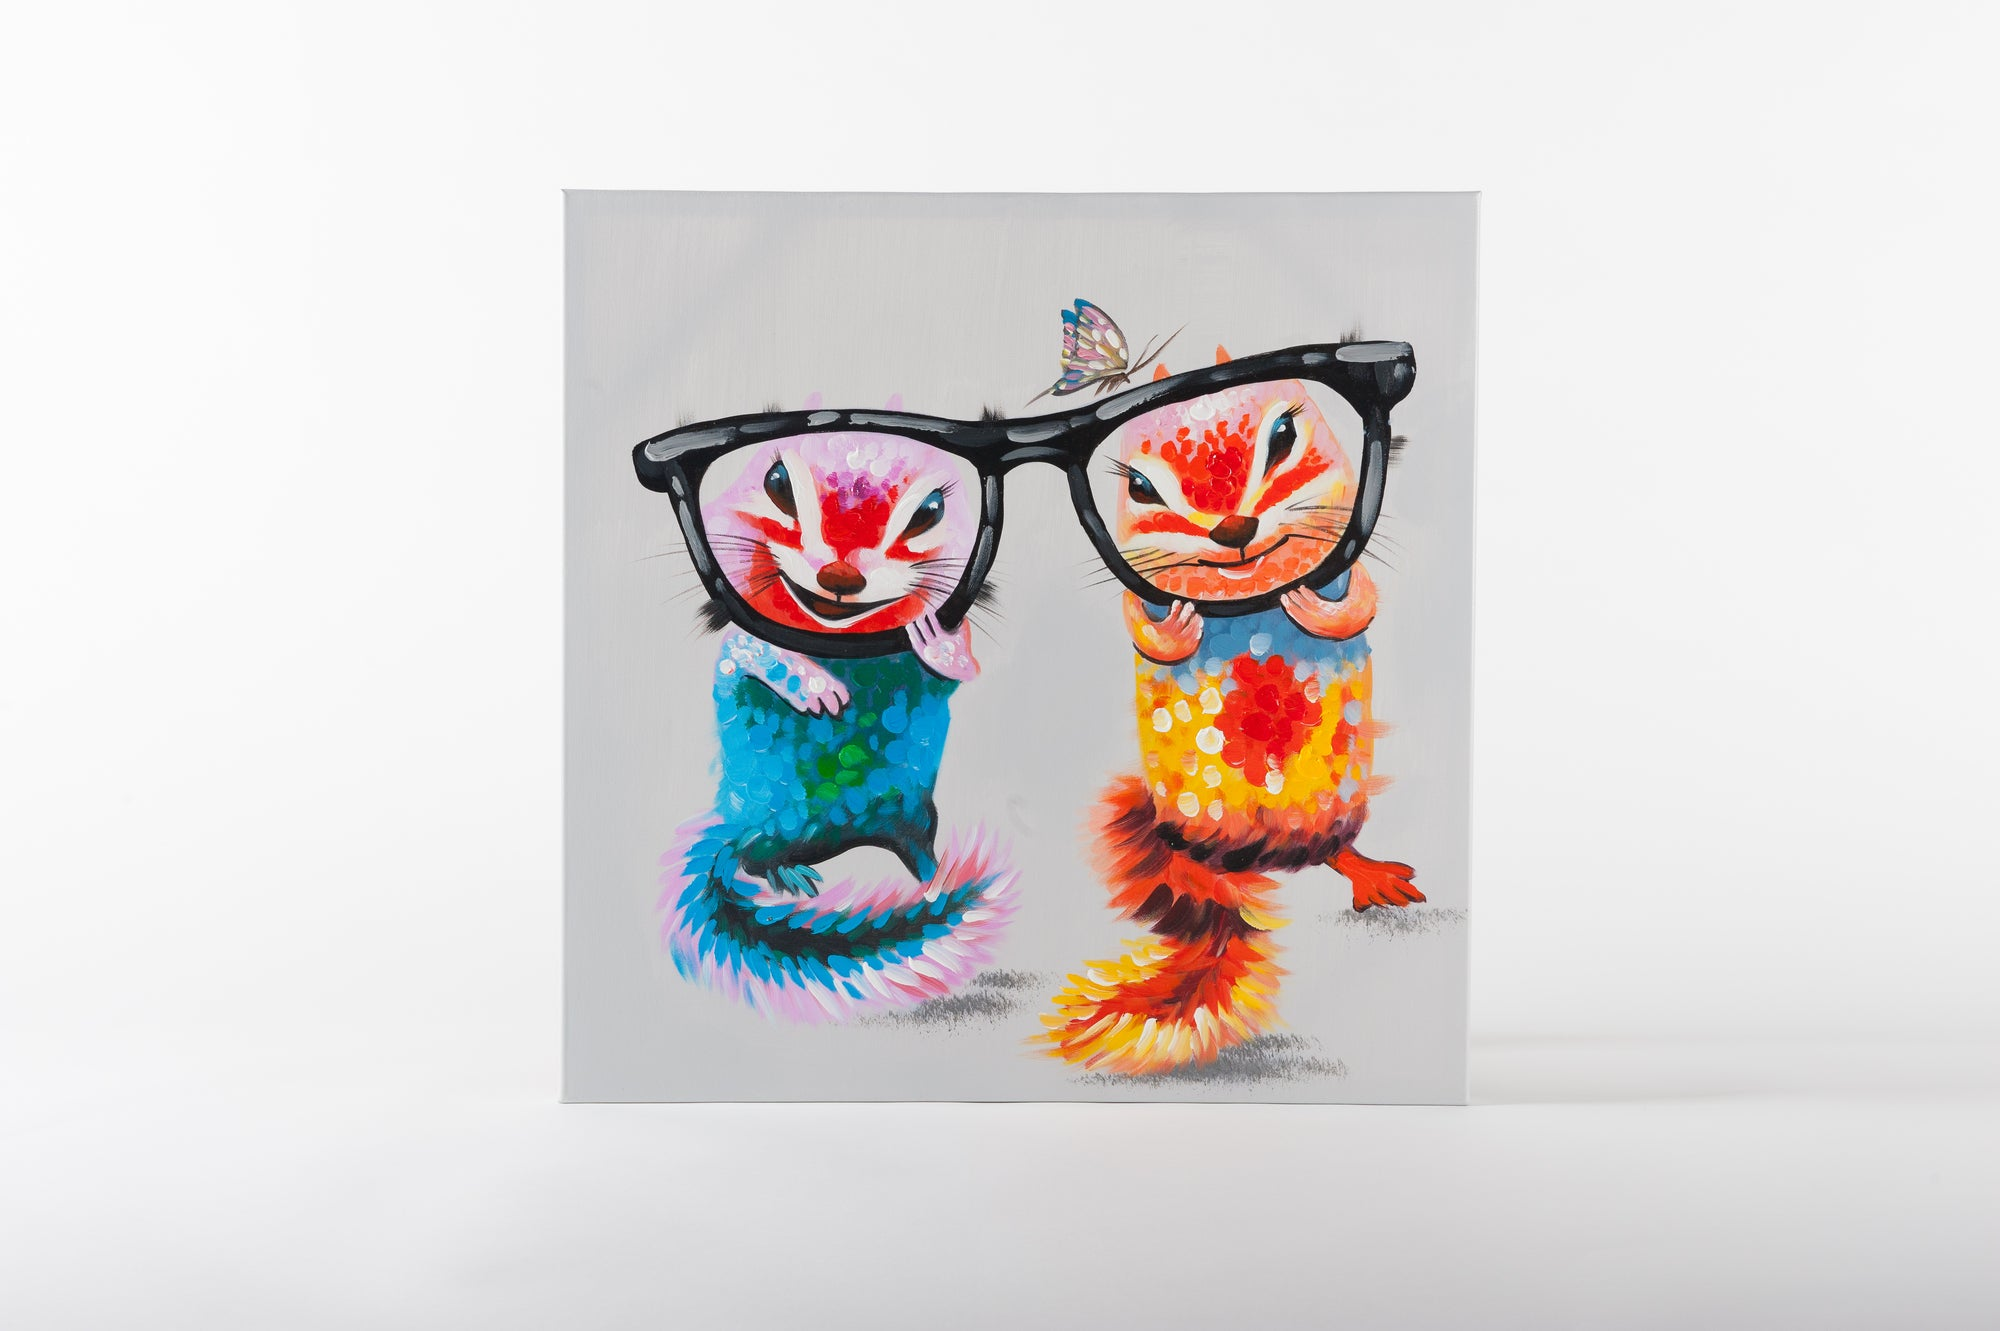 spectacle pair hand painted wall art on canvas - Fervor + Hue